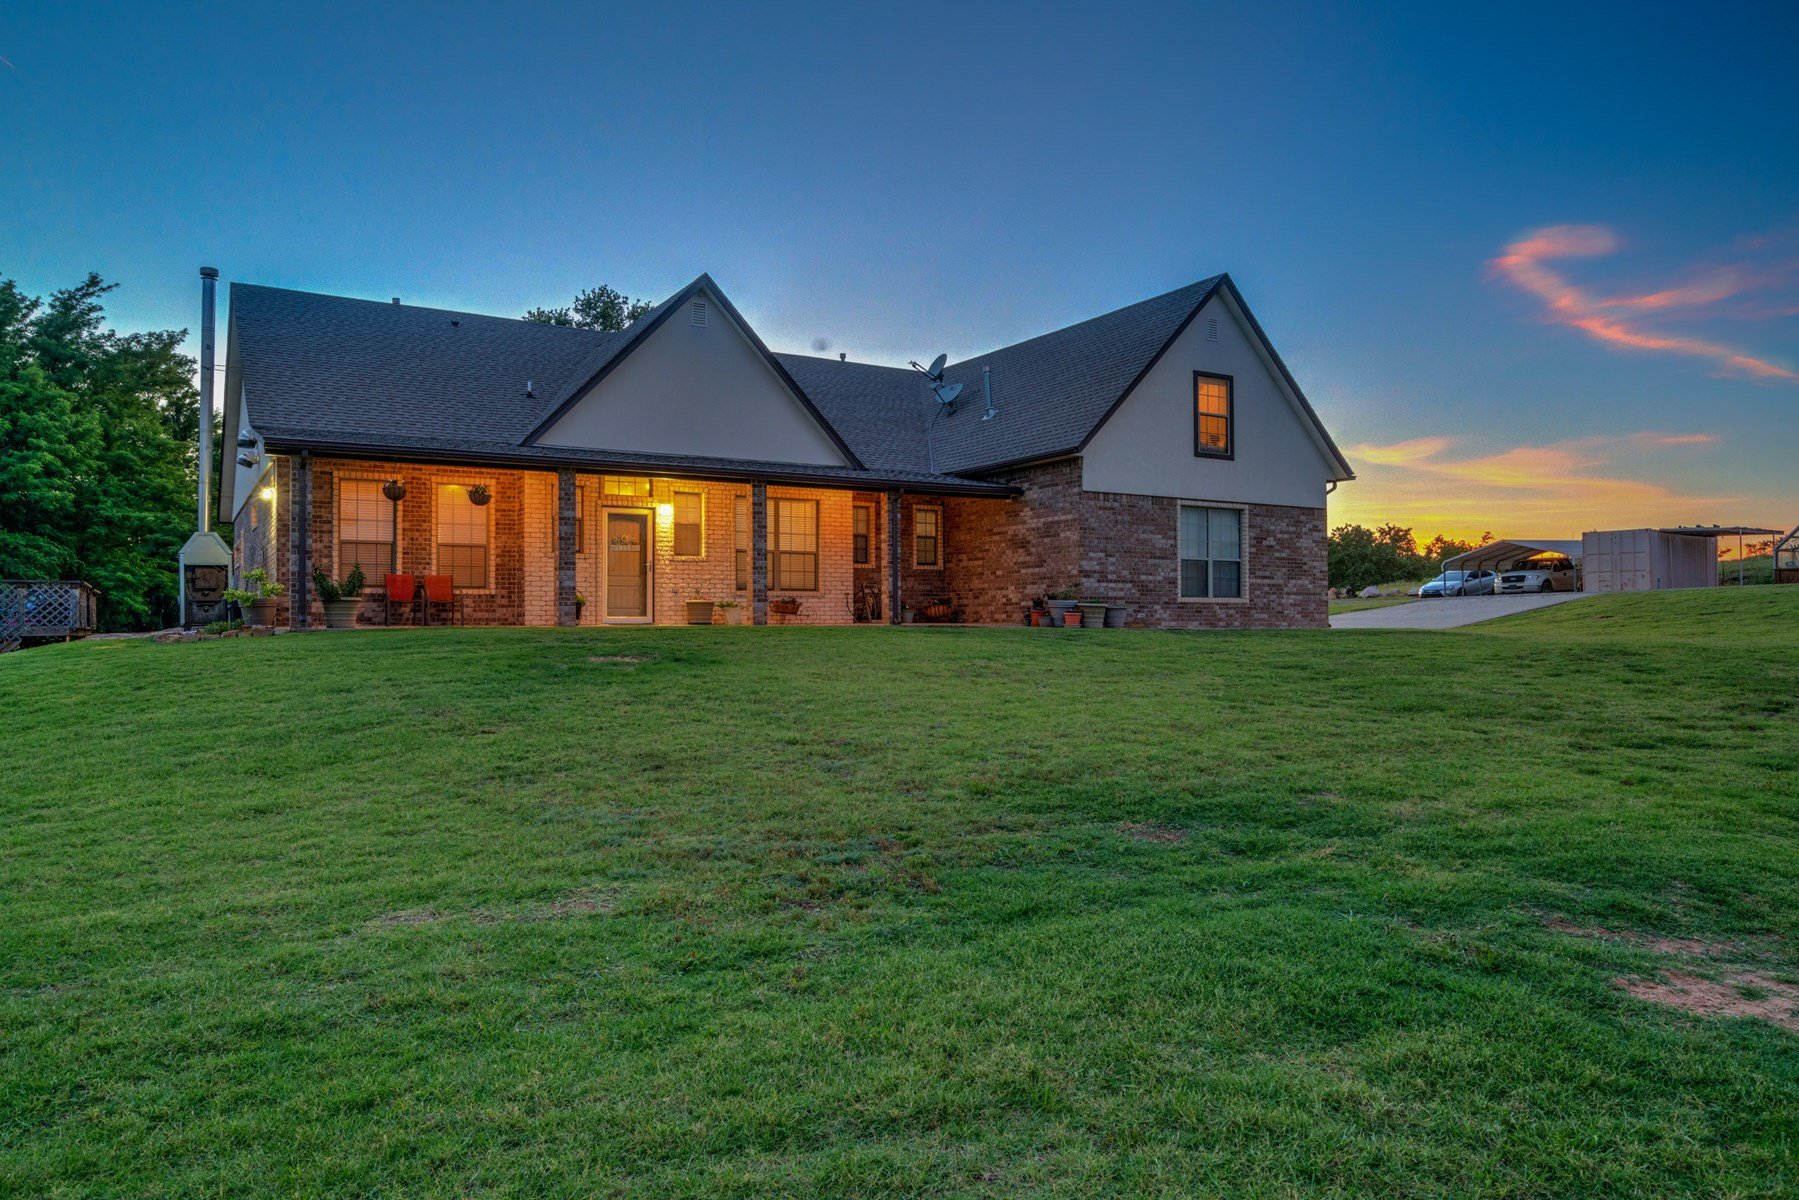 Country Home for Sale - Geary, Oklahoma - Canadian River